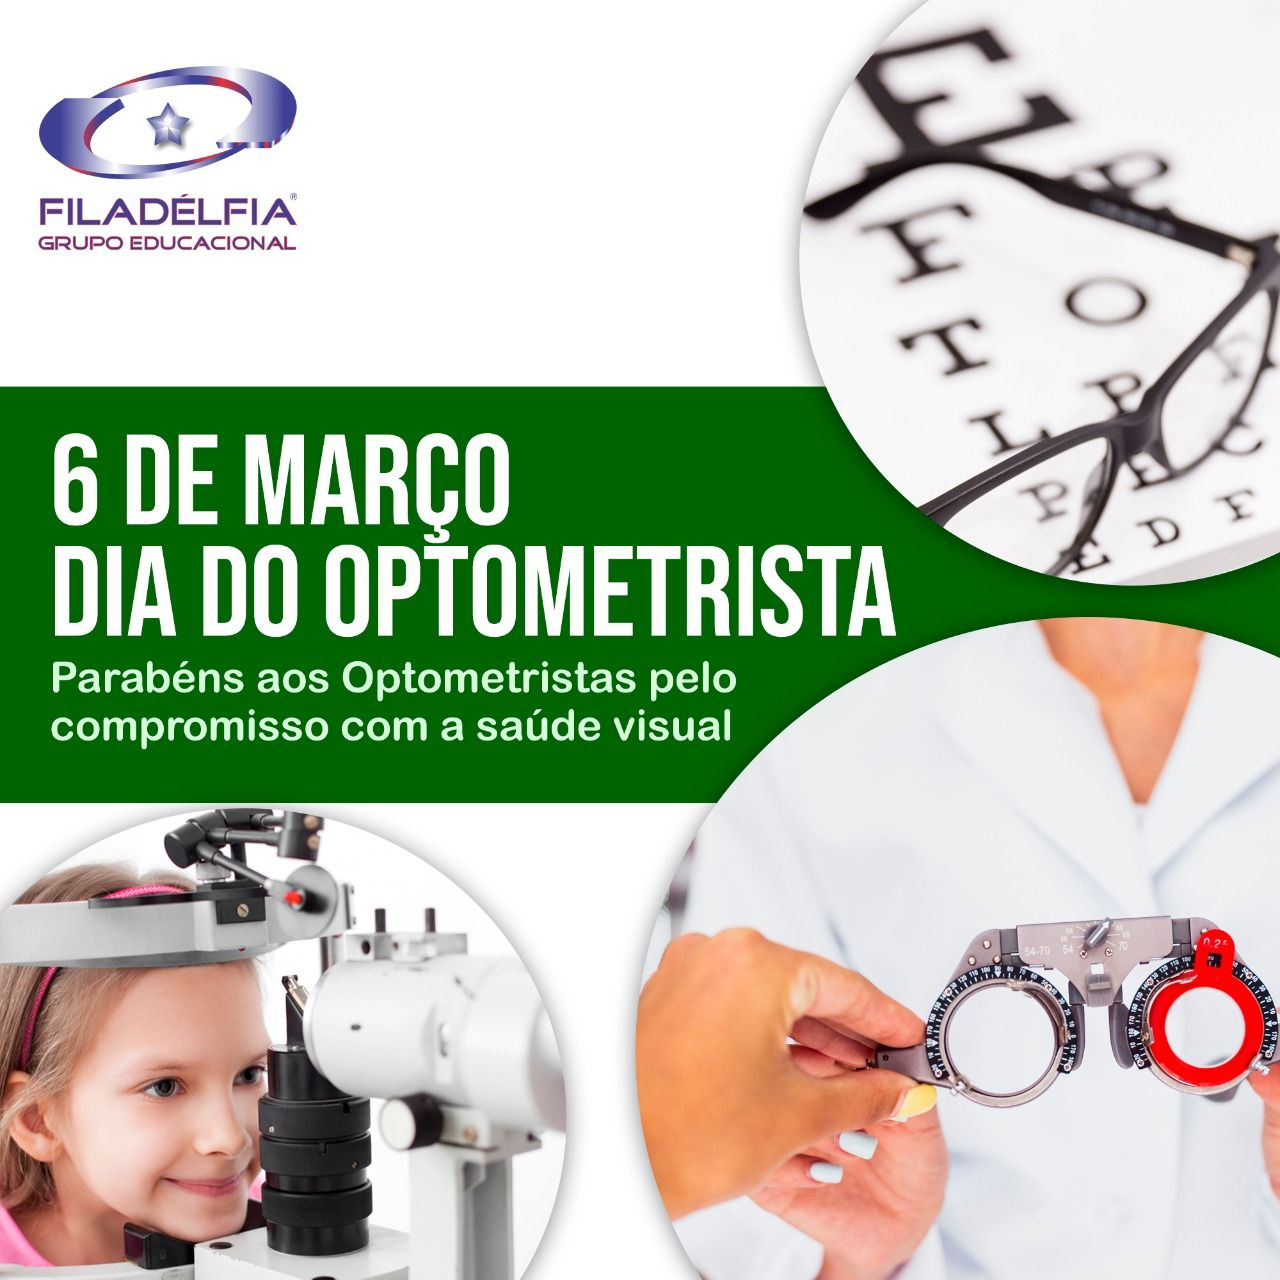 Filadelfia - Dia do Optometrista 2021